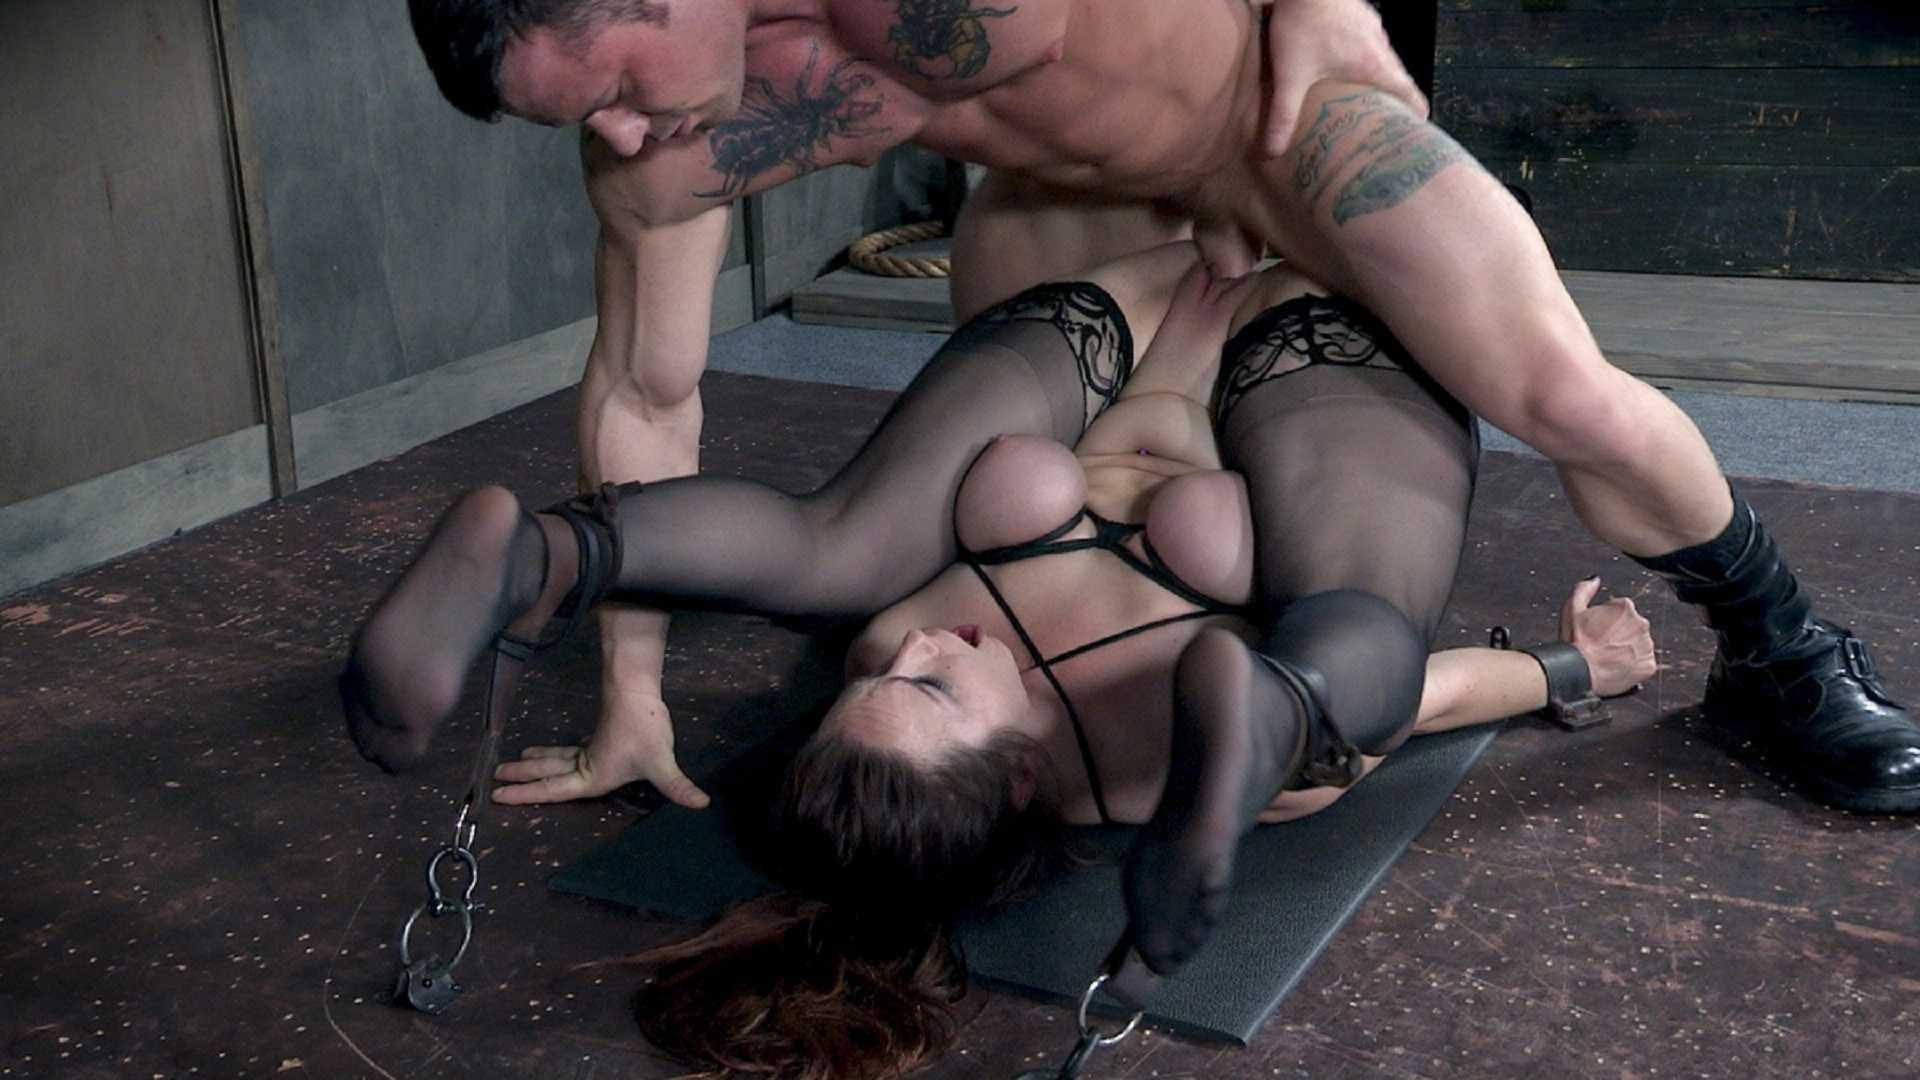 Bella Rossi BaRS Part 3: The Pile Driver! No other position makes a girl feel like a complete slut | Bella Rossi | Sergeant Miles  | HD 720p | April 15, 2017